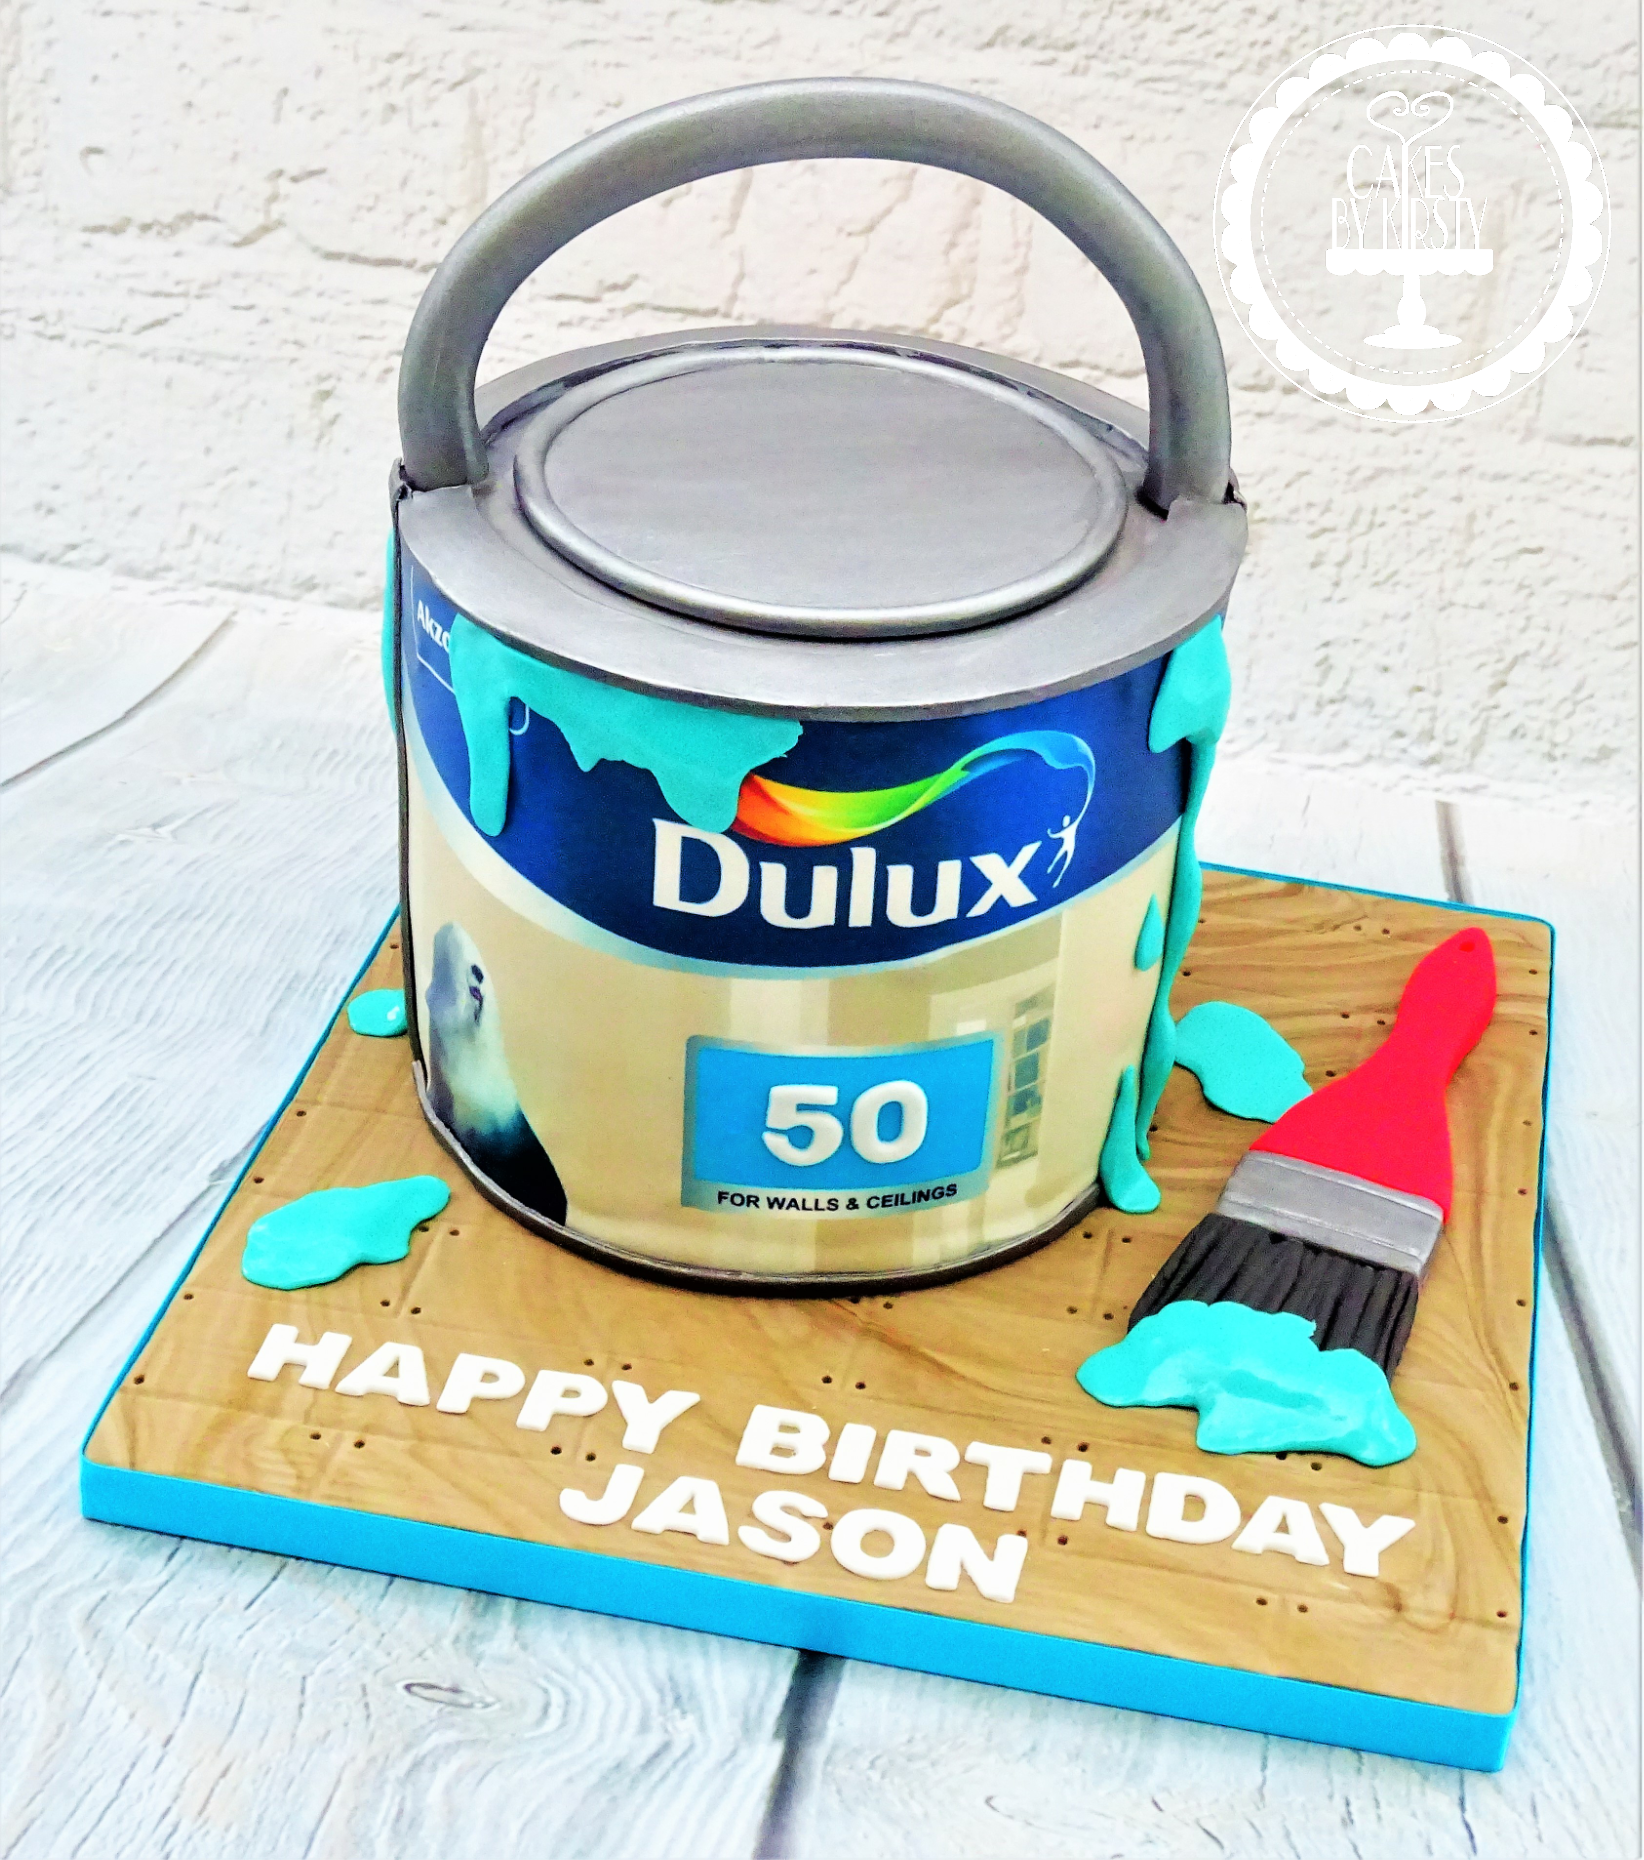 Dulux Paint Tin Cake